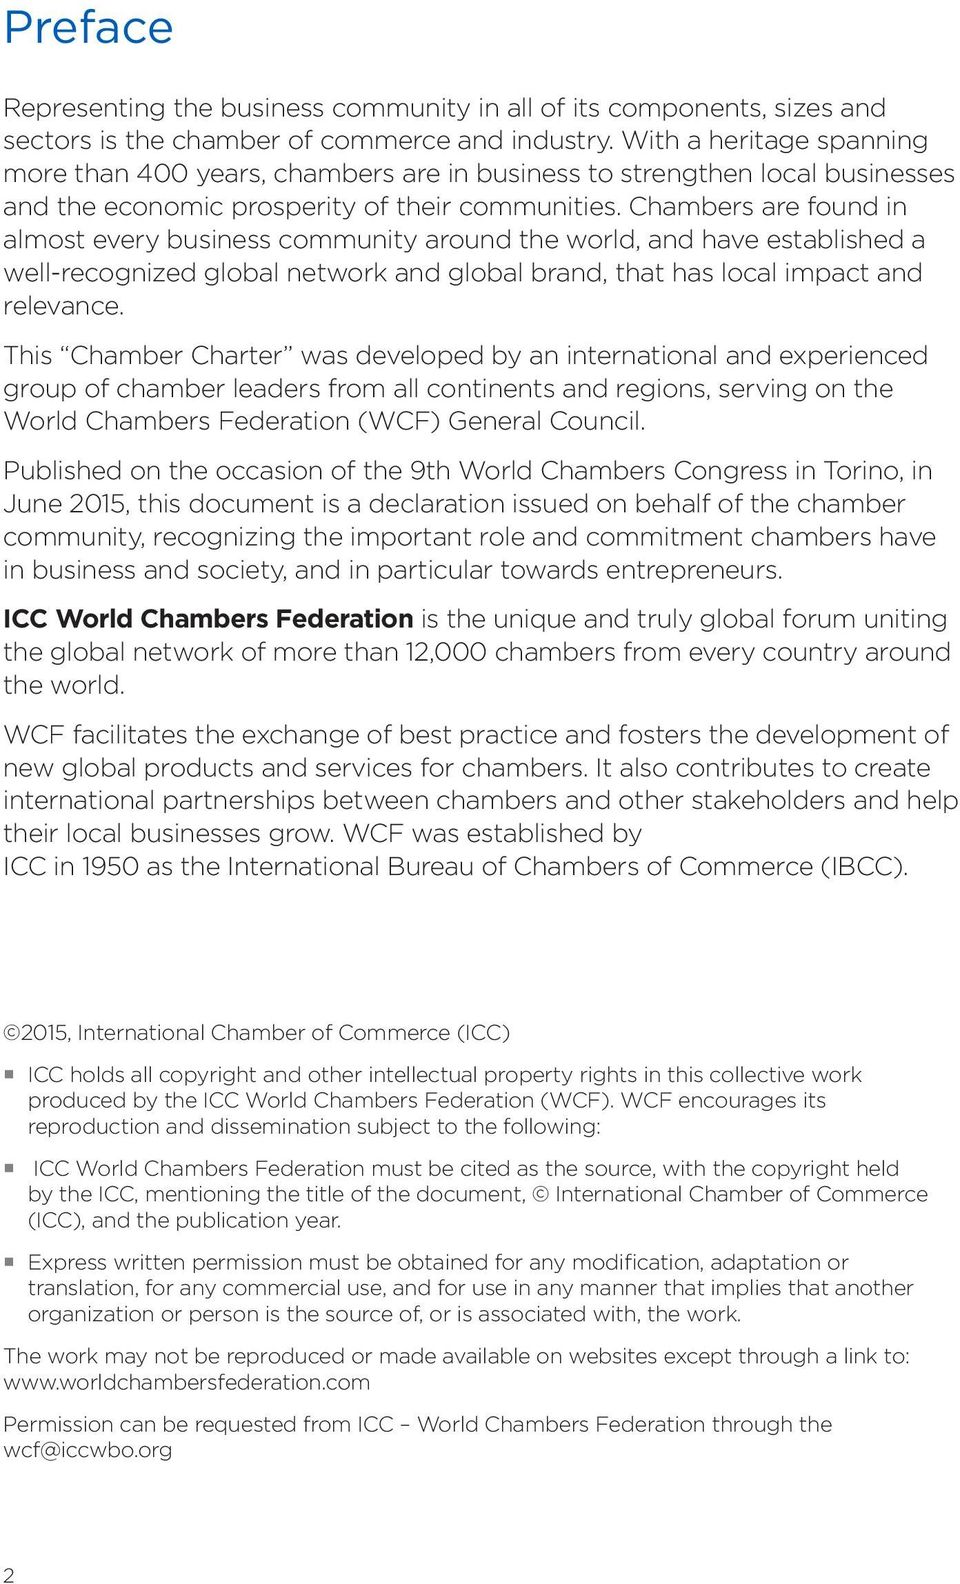 Chambers are found in almost every business community around the world, and have established a well-recognized global network and global brand, that has local impact and relevance.